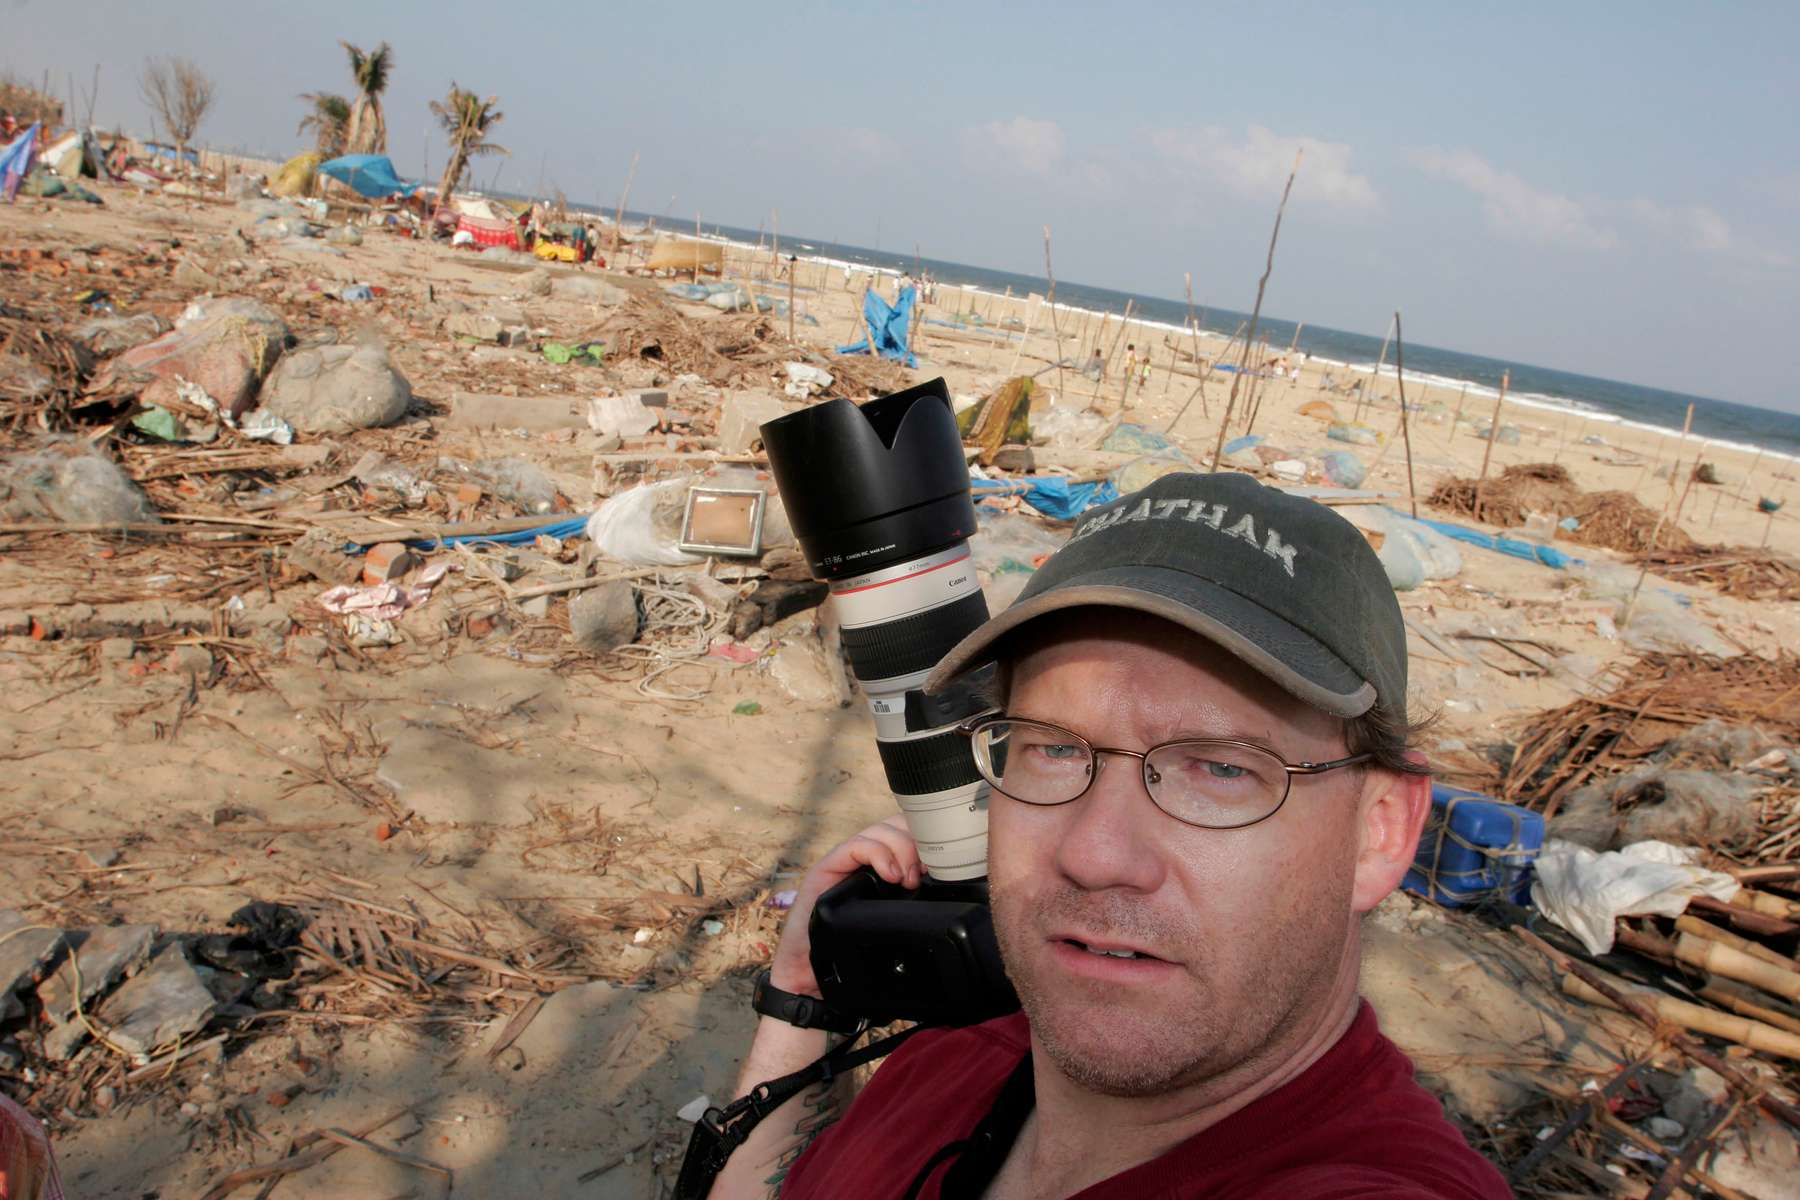 Star-Ledger staff photographer Matt Rainey on the beach in Chennai.   Living conditions on the coastline of southern India are horrific following the recent Tsunami disaster which struck the region on December 26, 2004.  Thousands live without any shelter in the Srinivasa Puram neighborhood on Chennai.    1/14/05 -  MATT RAINEY/THE STAR-LEDGER